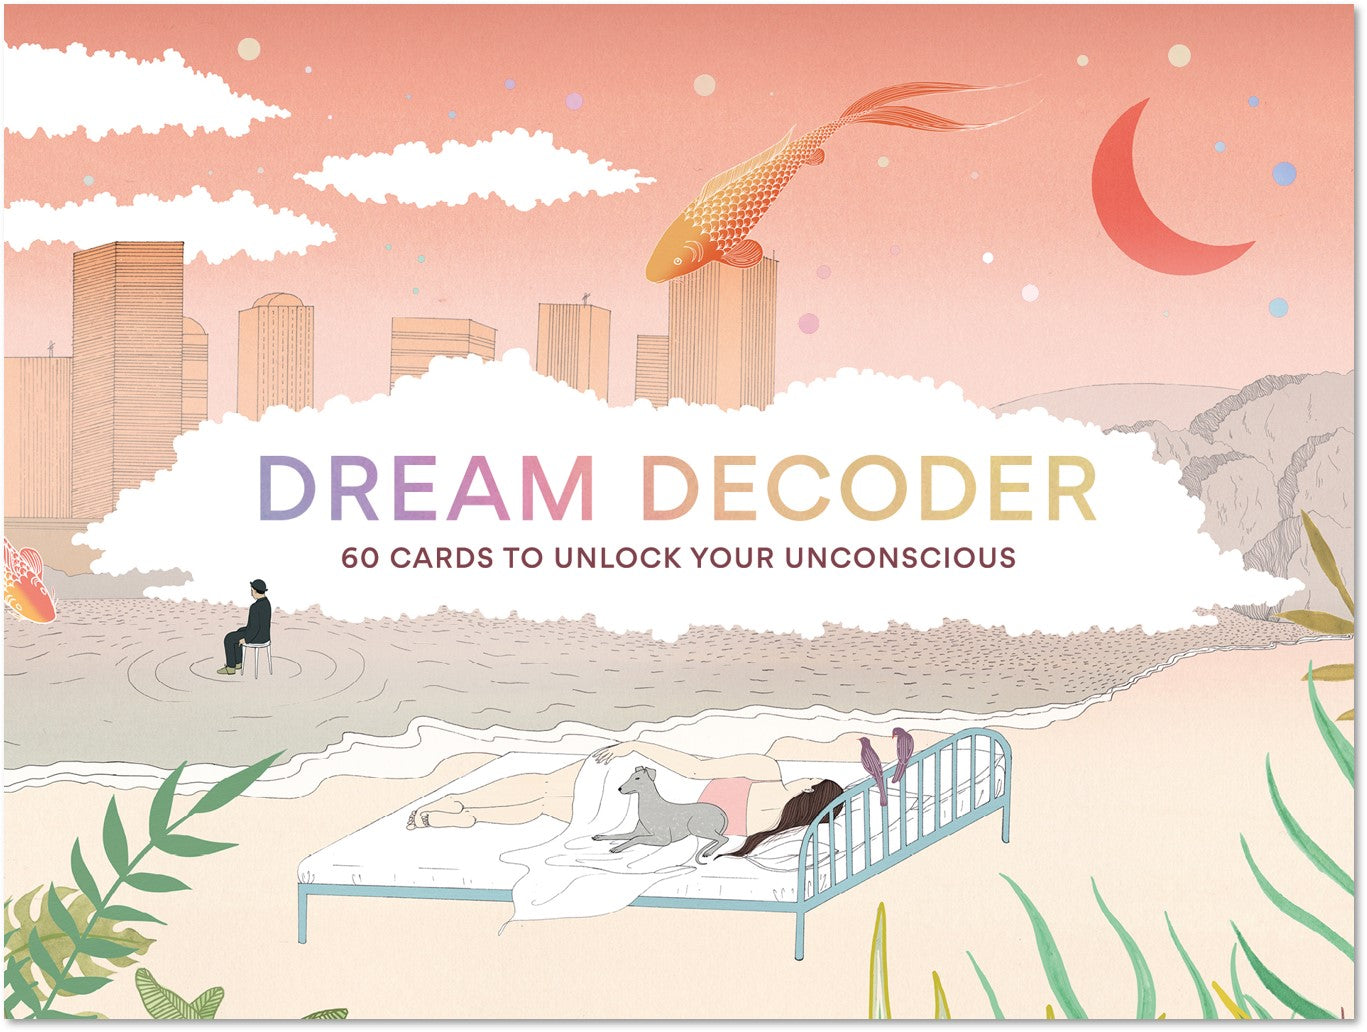 Hardie Grant Books - Dream Decoder - last minute gift idea - melbourne